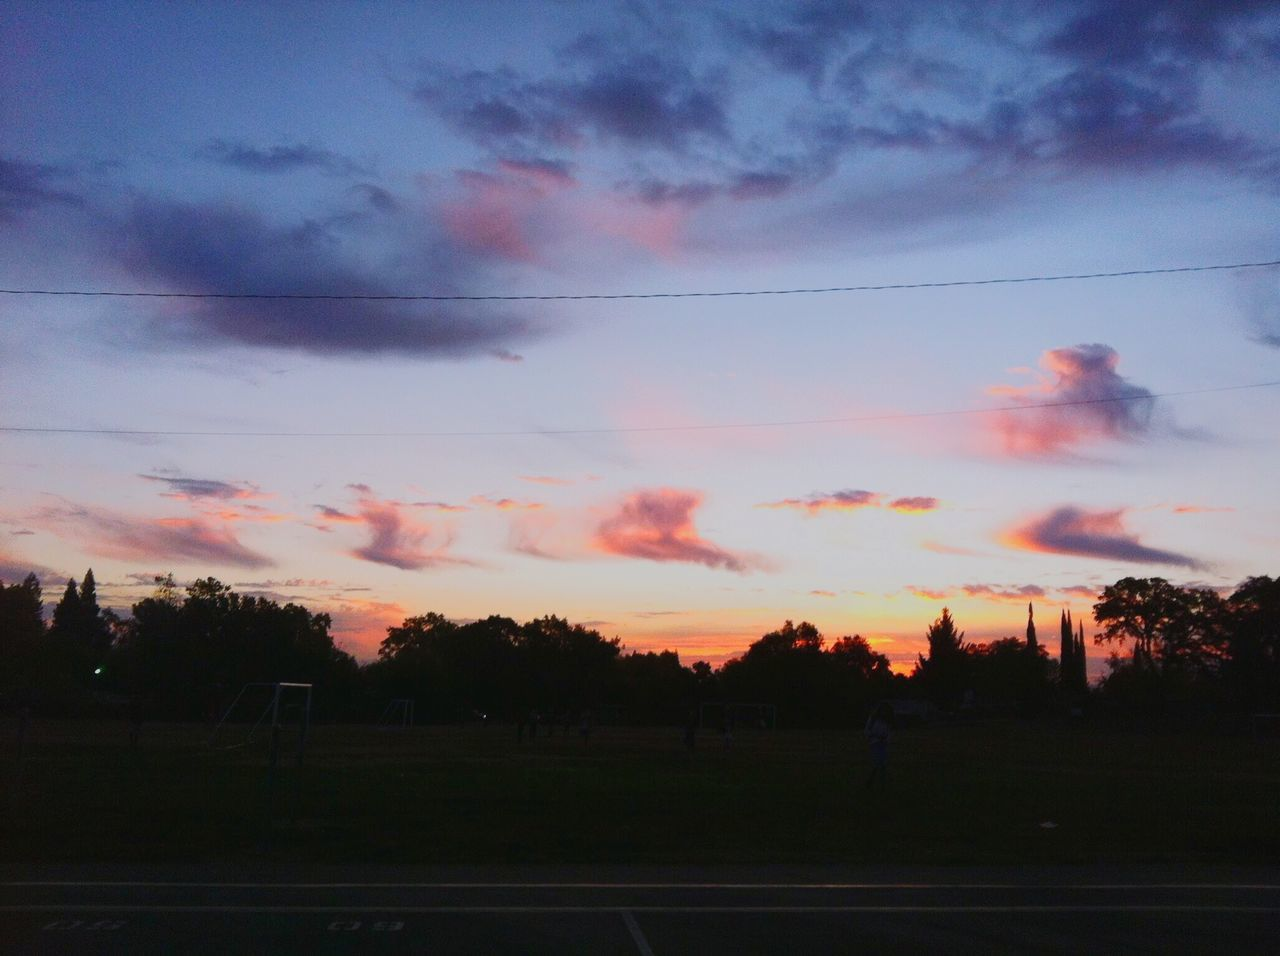 sunset, sky, cloud - sky, silhouette, no people, tree, nature, beauty in nature, tranquility, outdoors, scenics, landscape, soccer field, day